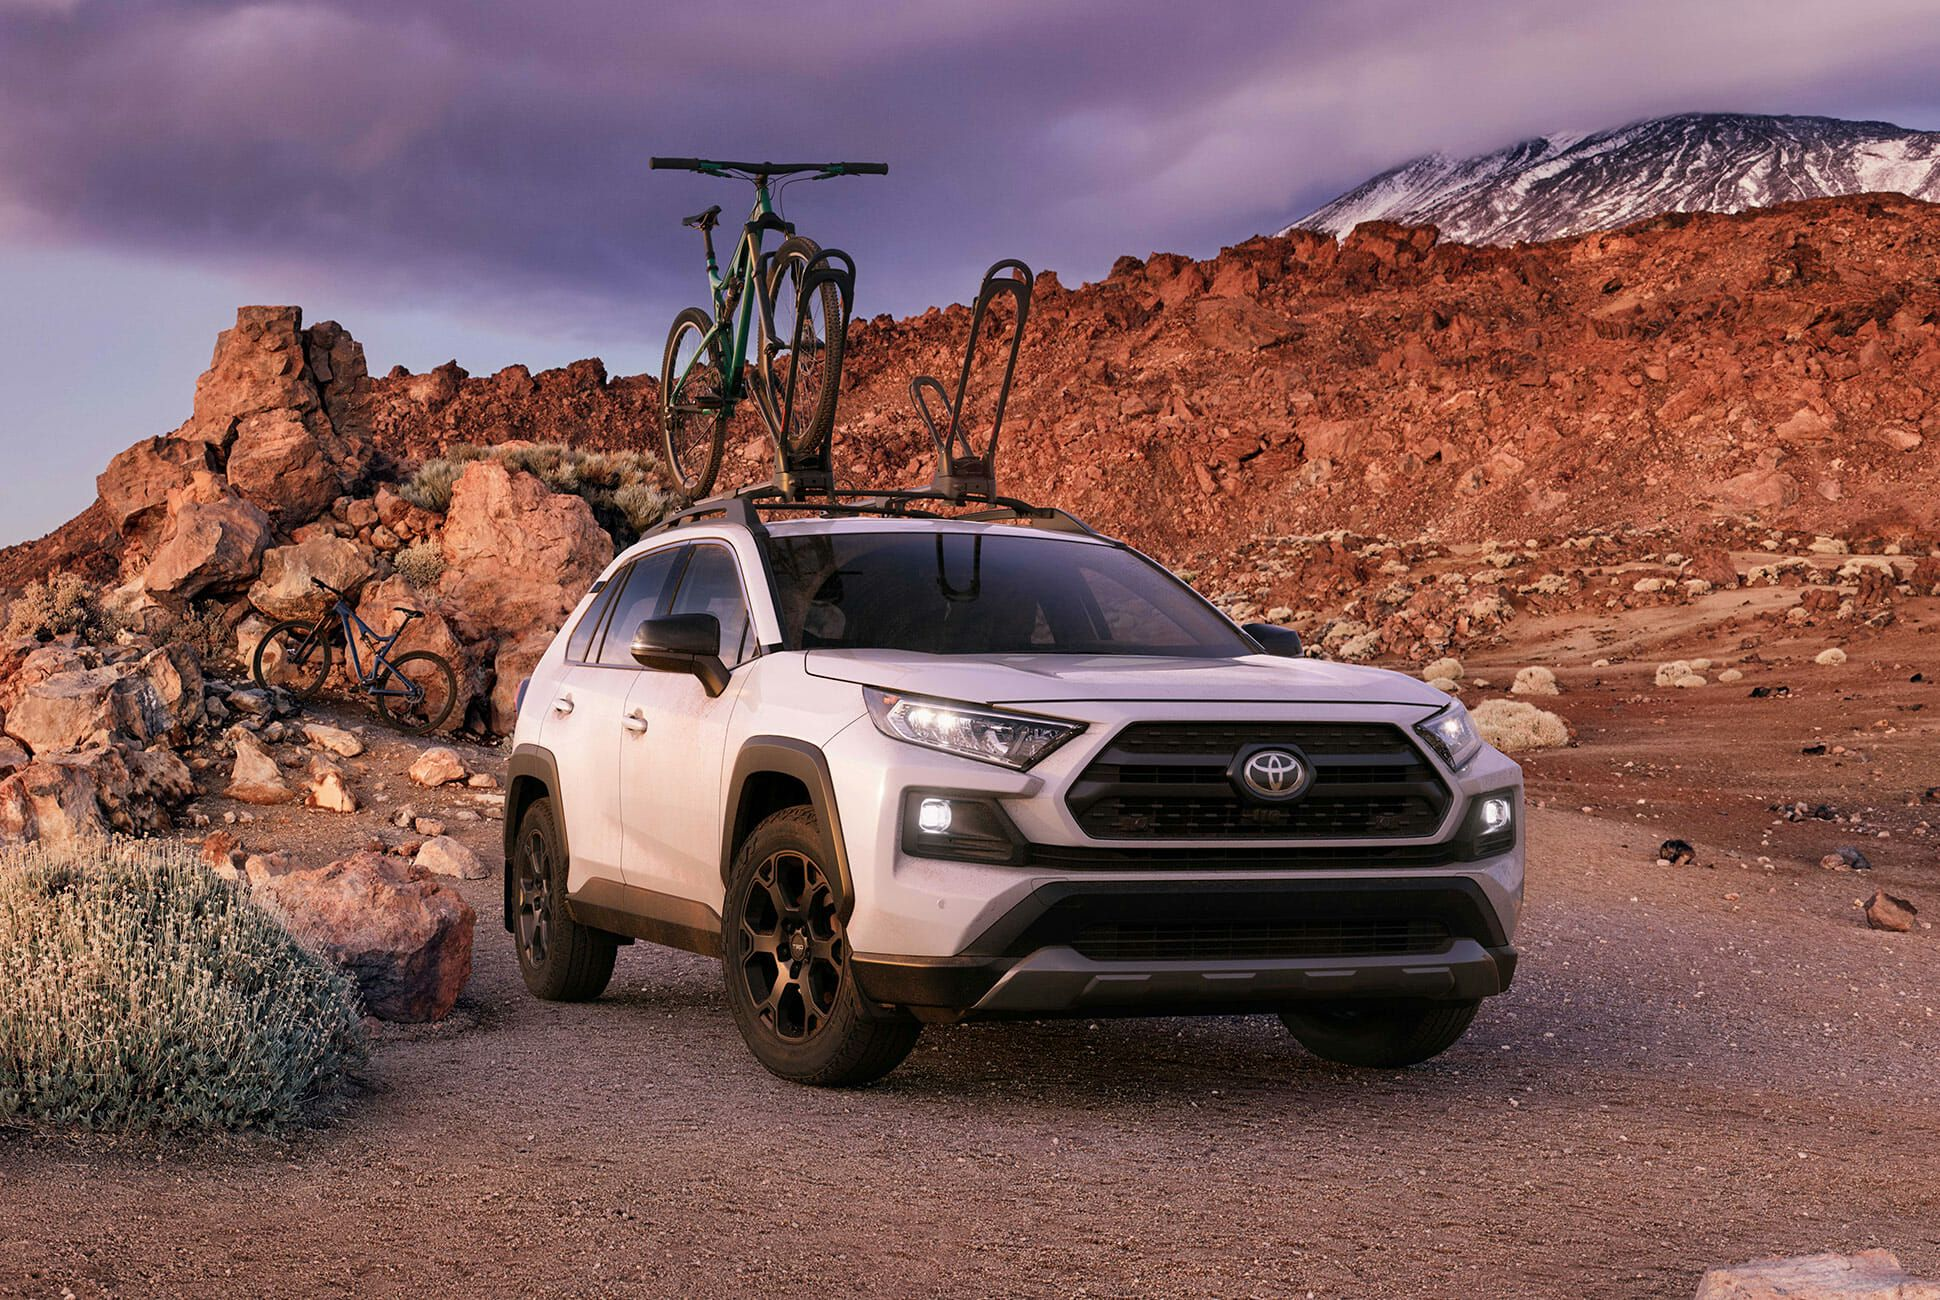 2020 Rav4 Hybrid Review.2020 Toyota Rav4 Hybrid Review A Step Toward The Future